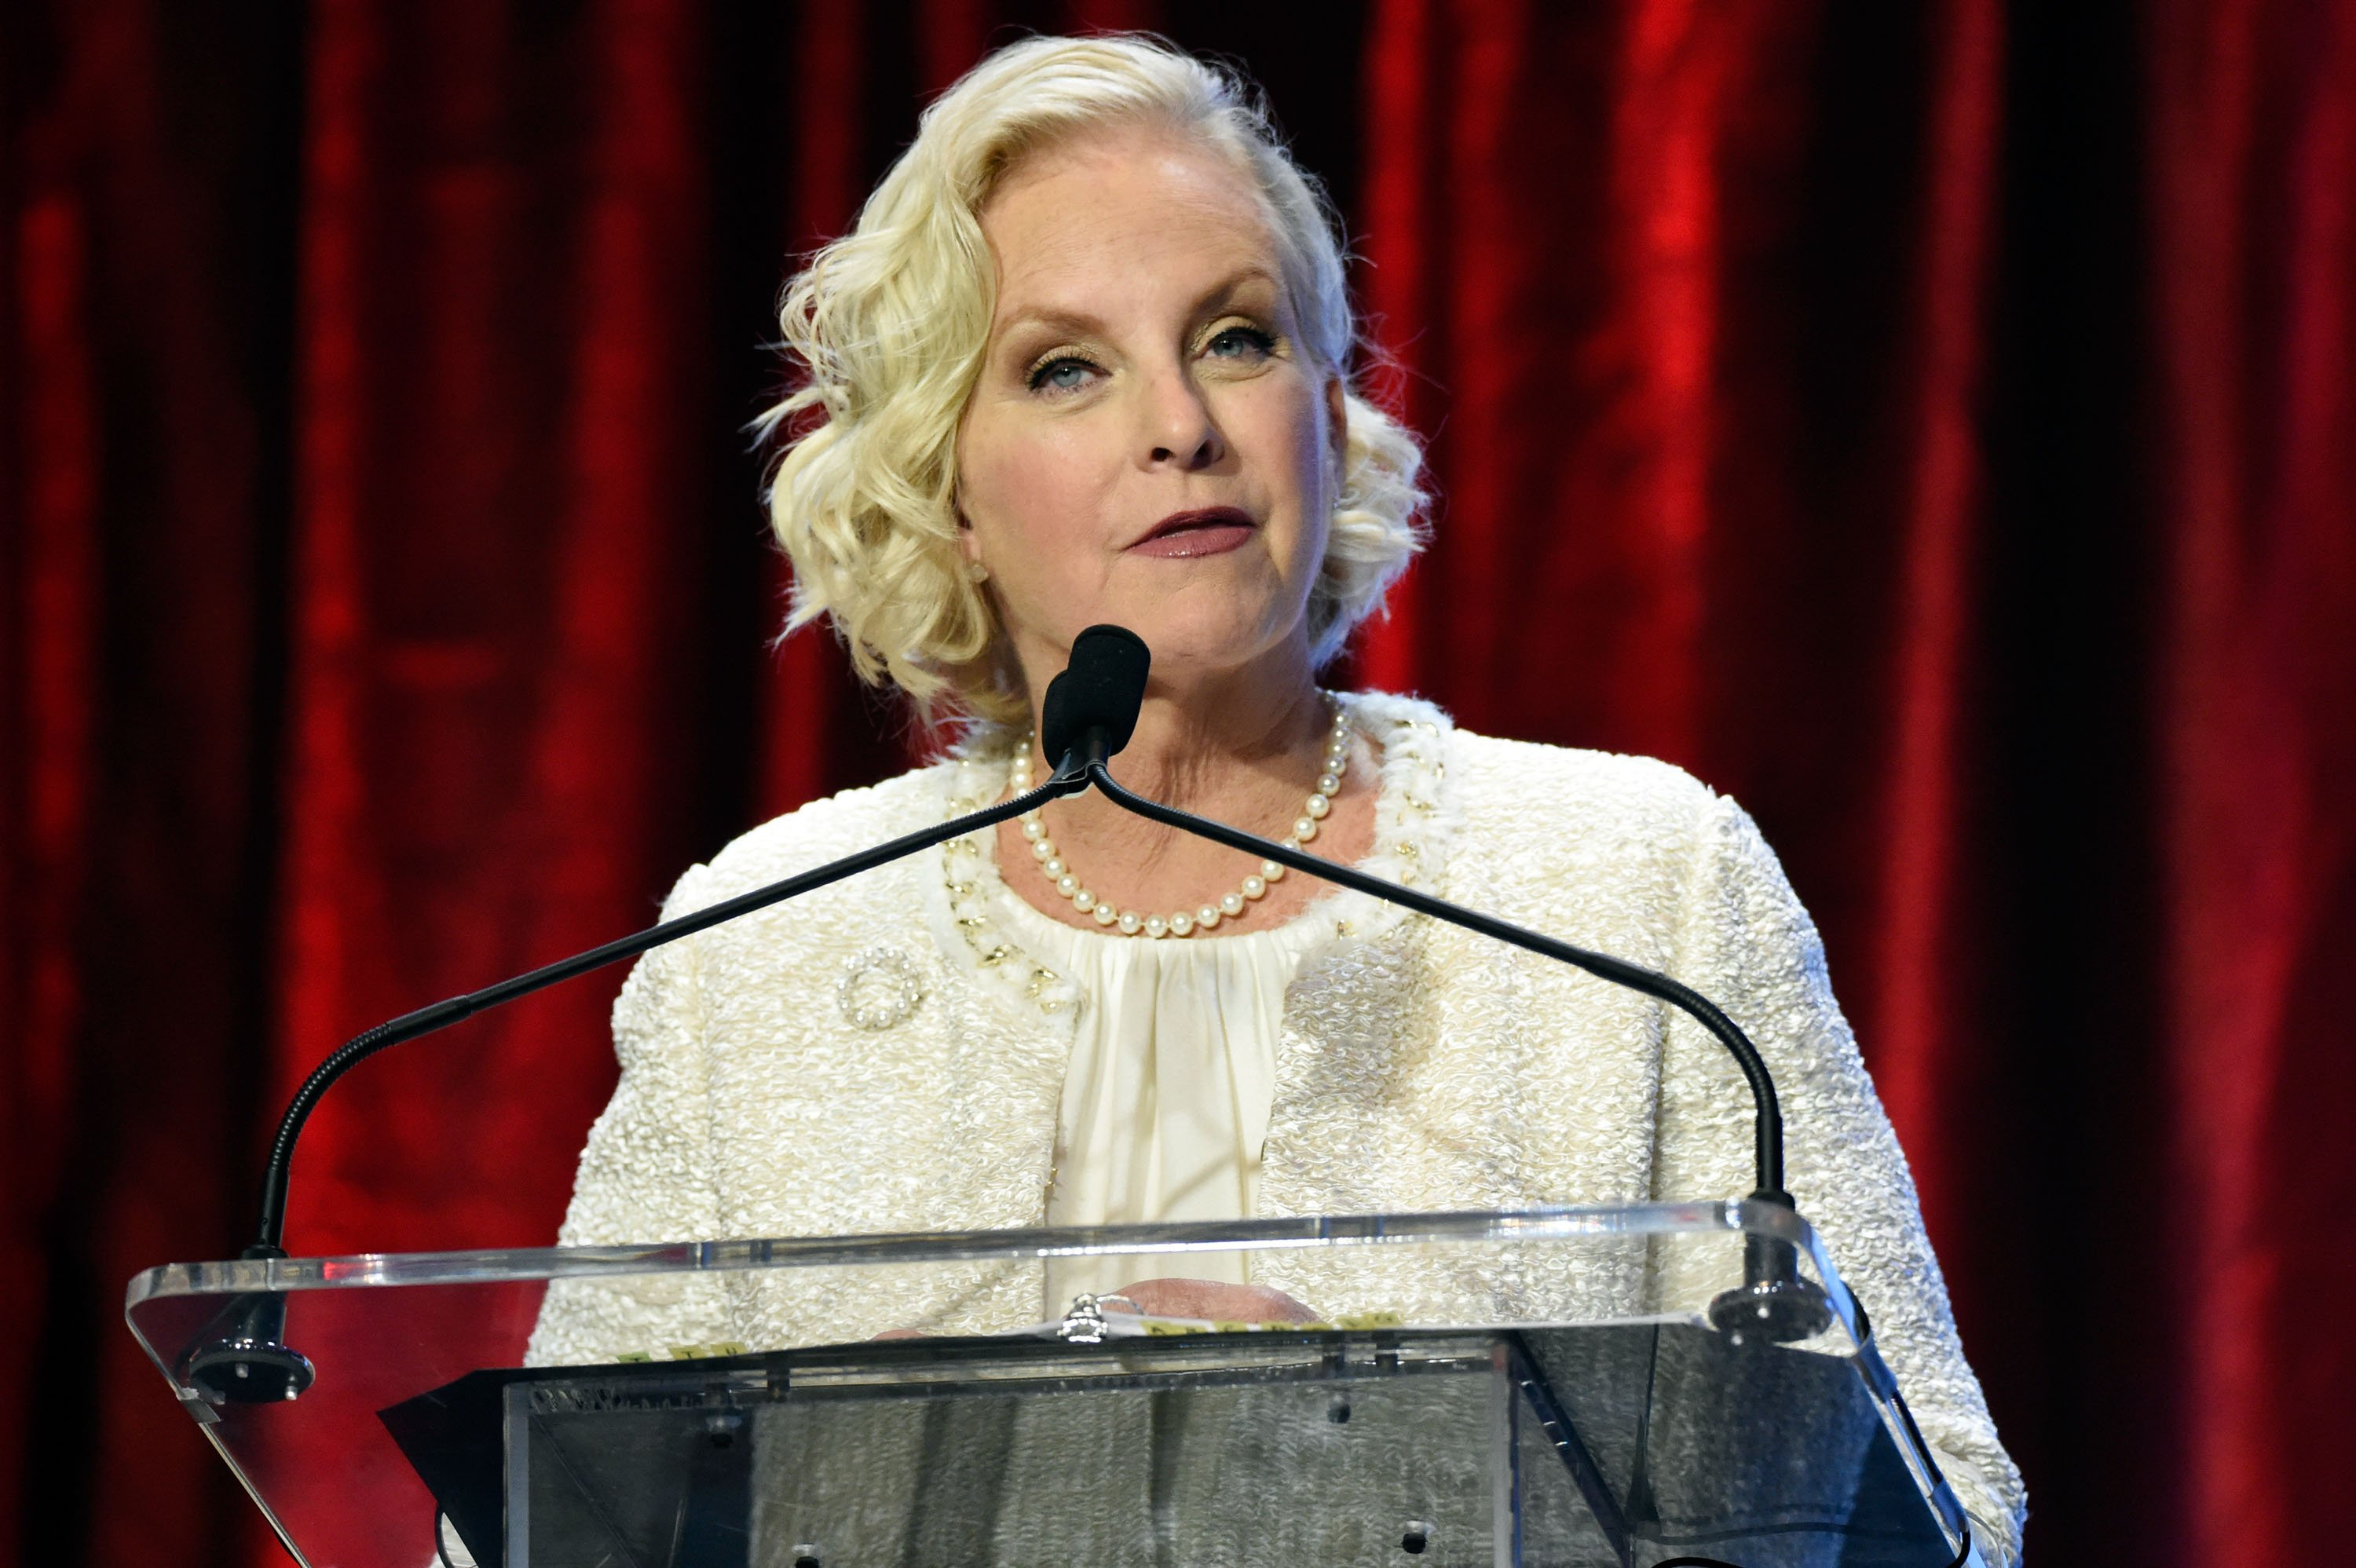 Cindy McCain at the Muhammad Ali Humanitarian Awards at Marriott Louisville Downtown on September 17, 2016 in Louisville, Kentucky | Photo: Getty Images